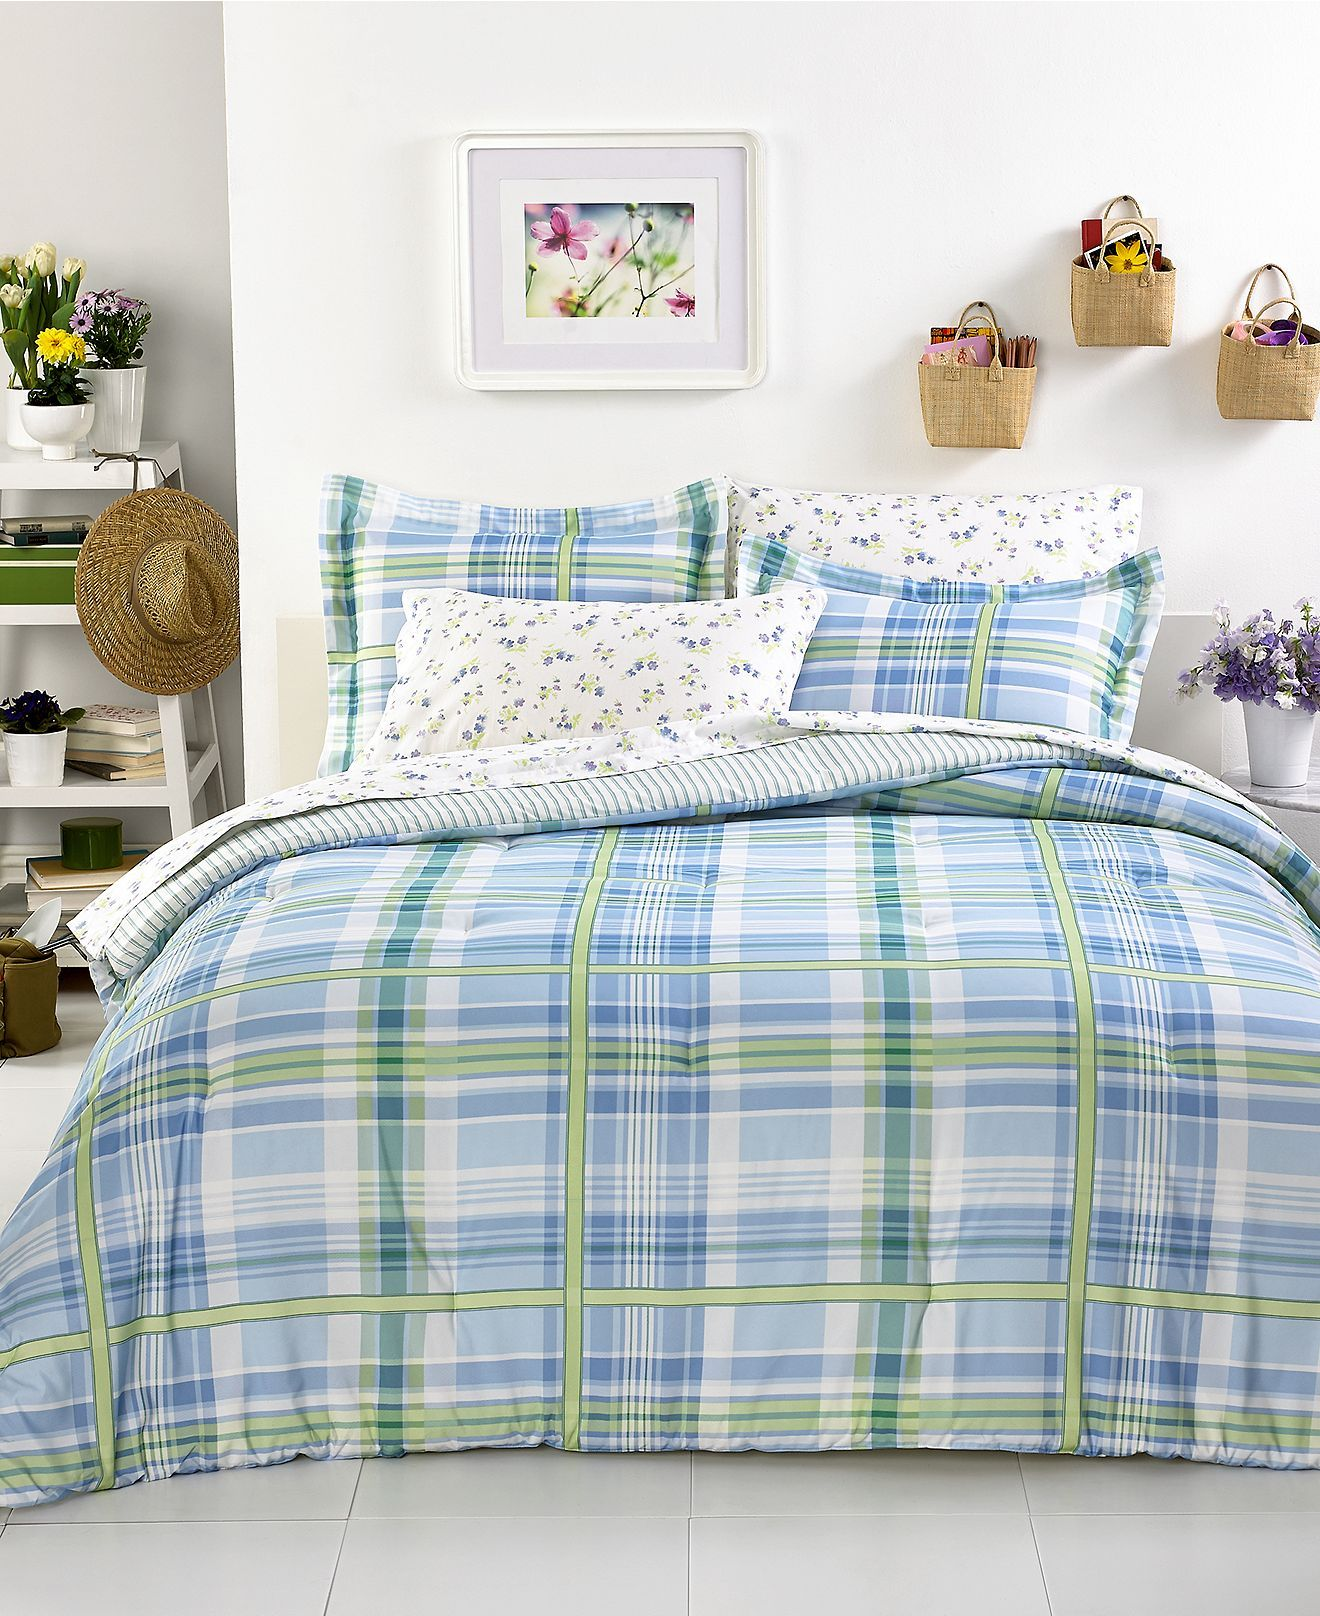 Tommy Hilfiger Bedding Blue Hill forter Sets Bedding